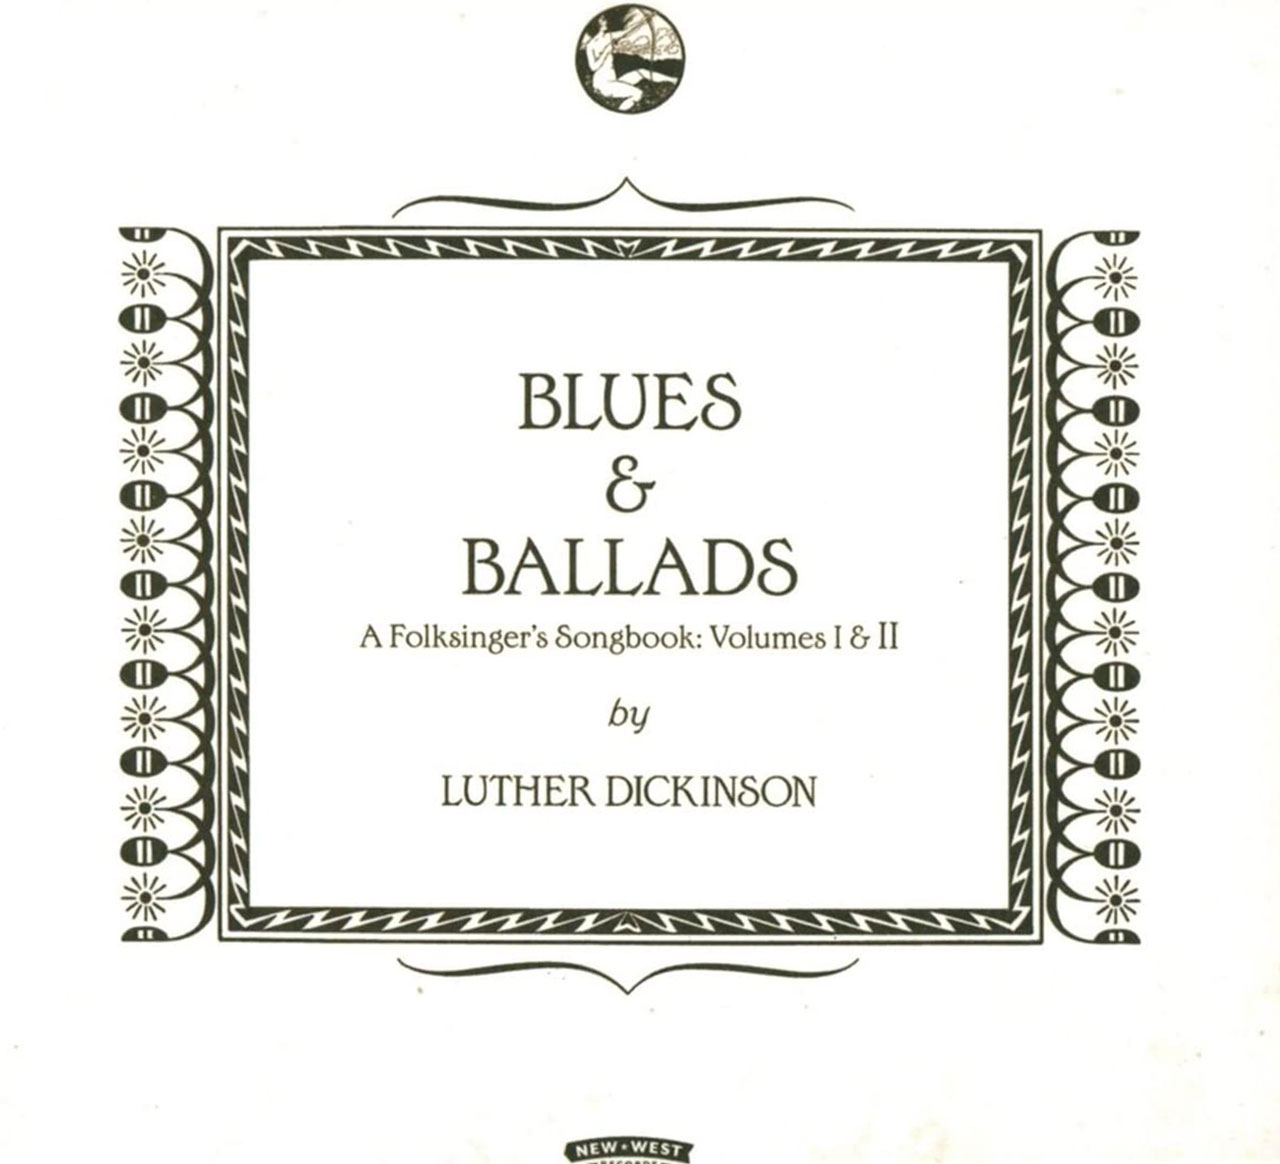 Luther Dickinson – Blues & Ballads, A Folksinger's Songbook: Volume 1 & 2 cover album